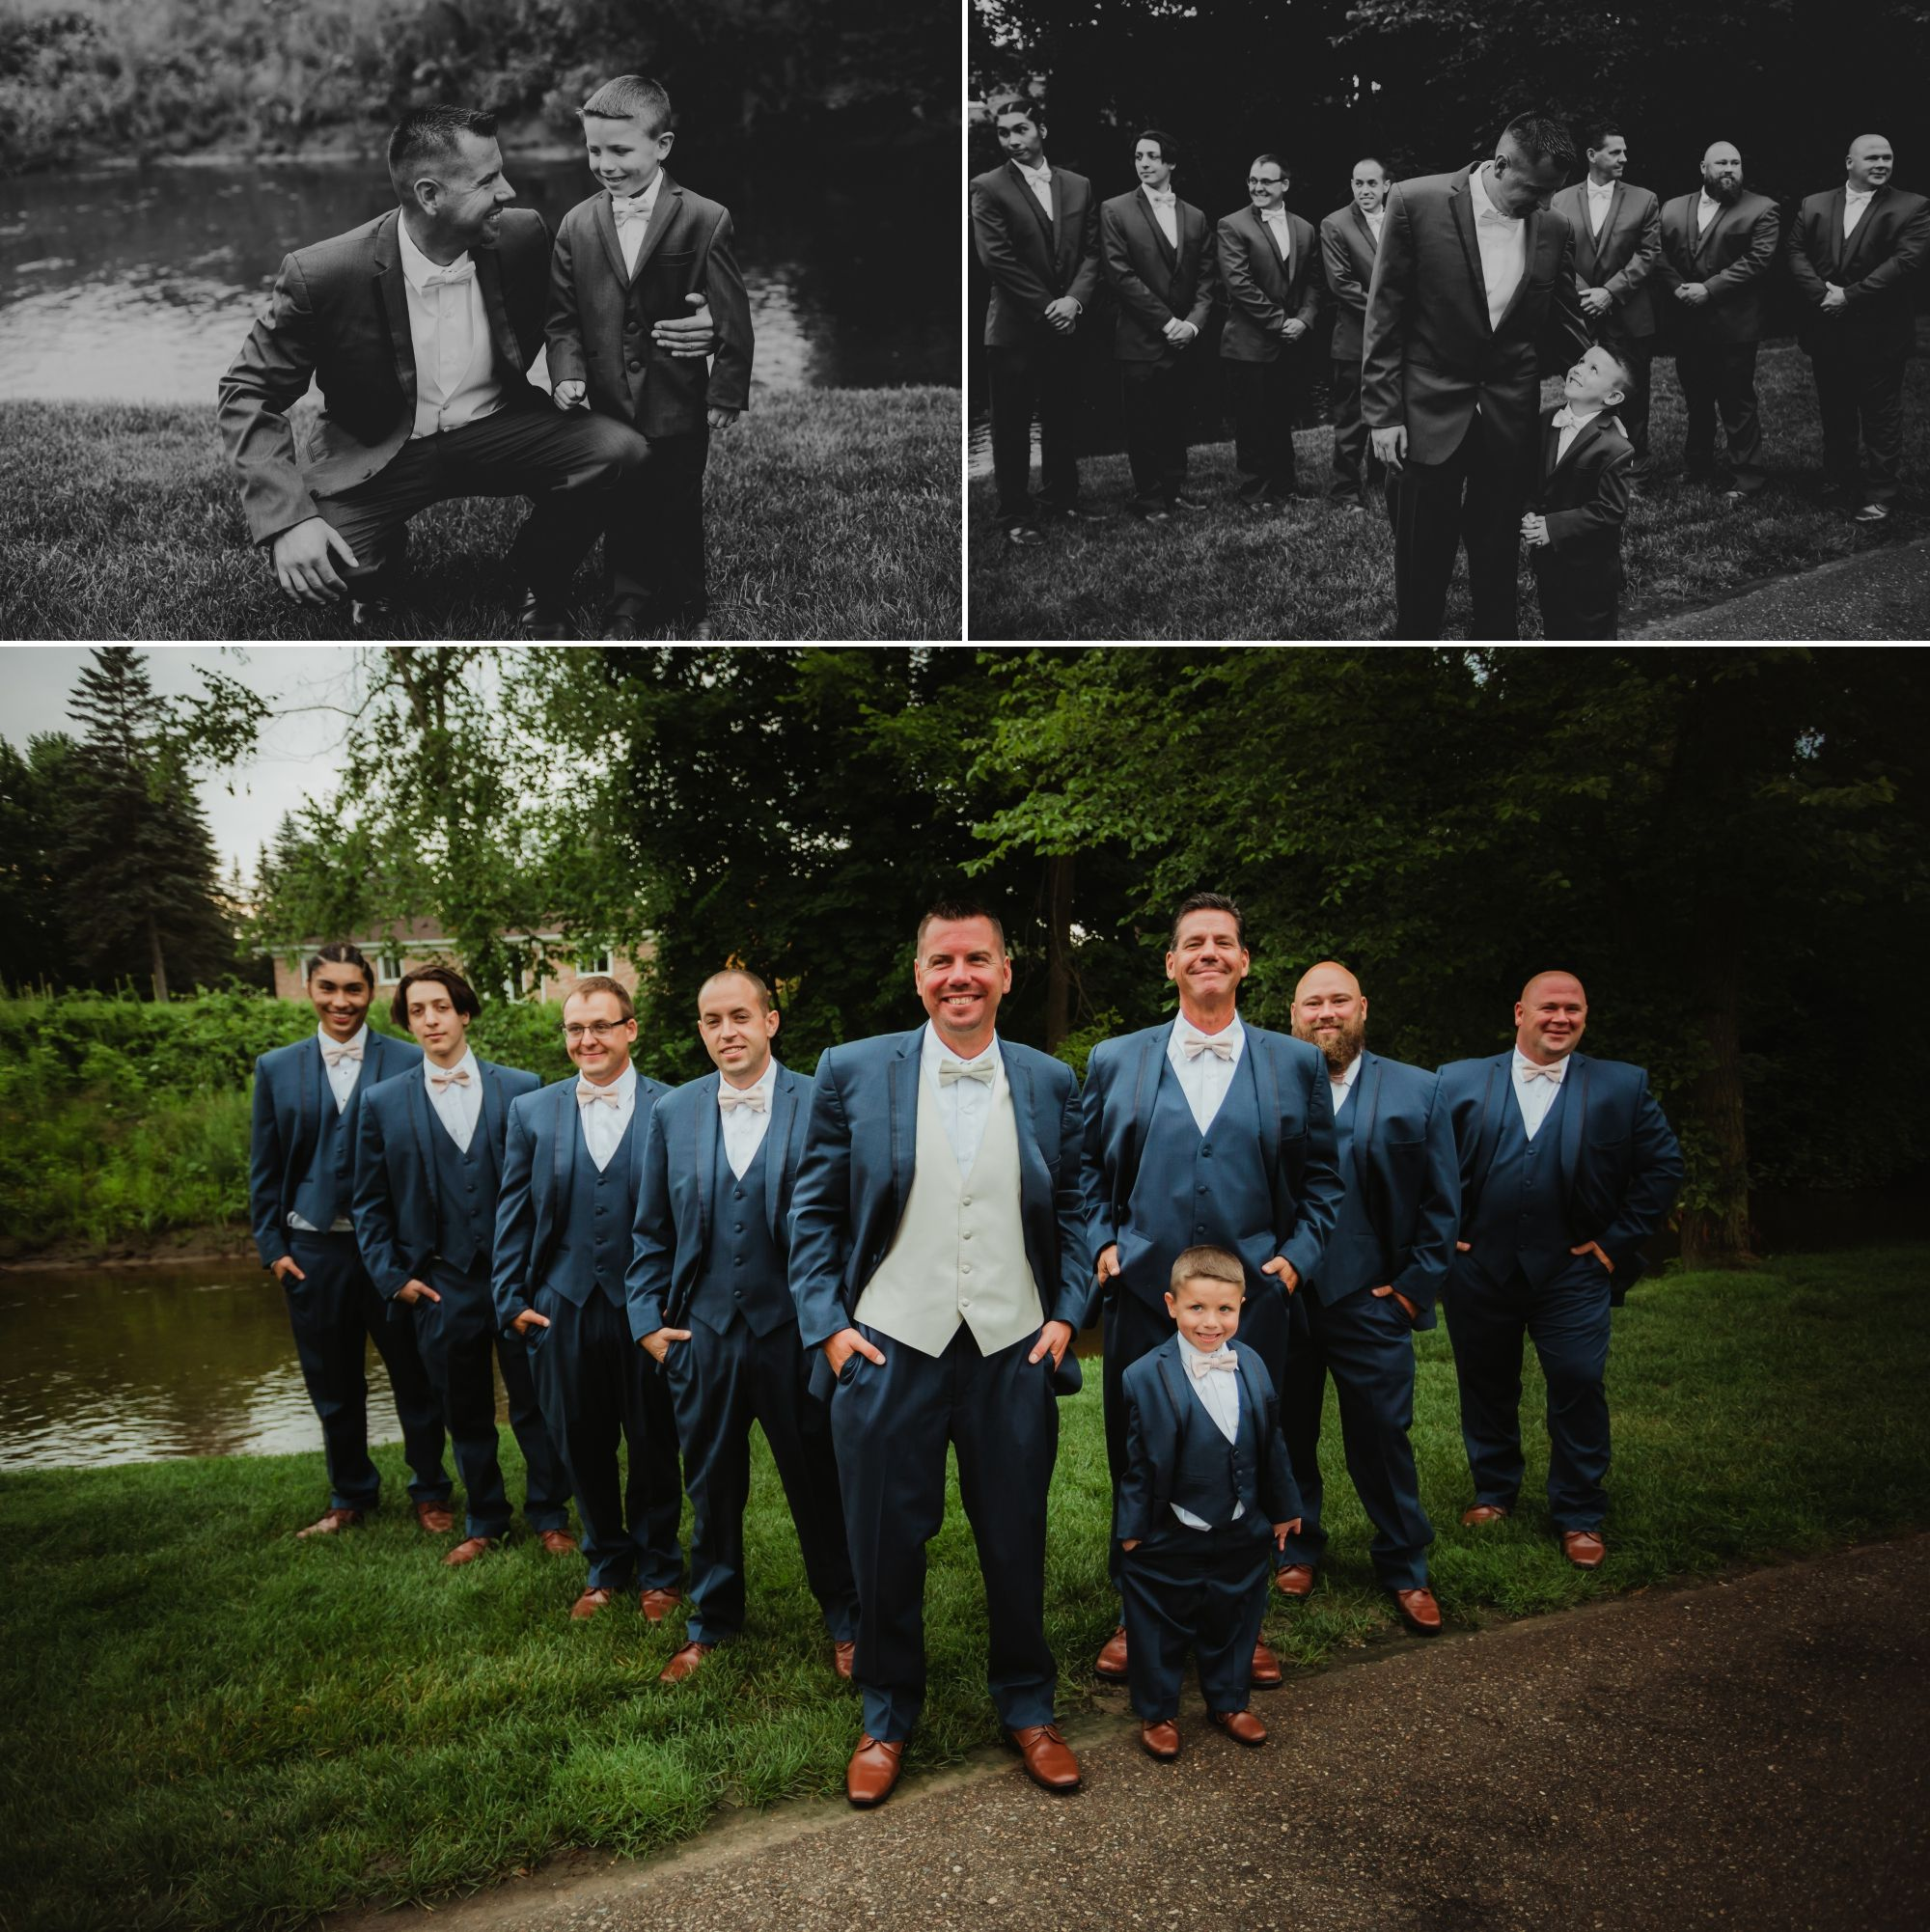 Photos of the groom and groomsmen standing together in front of a river.